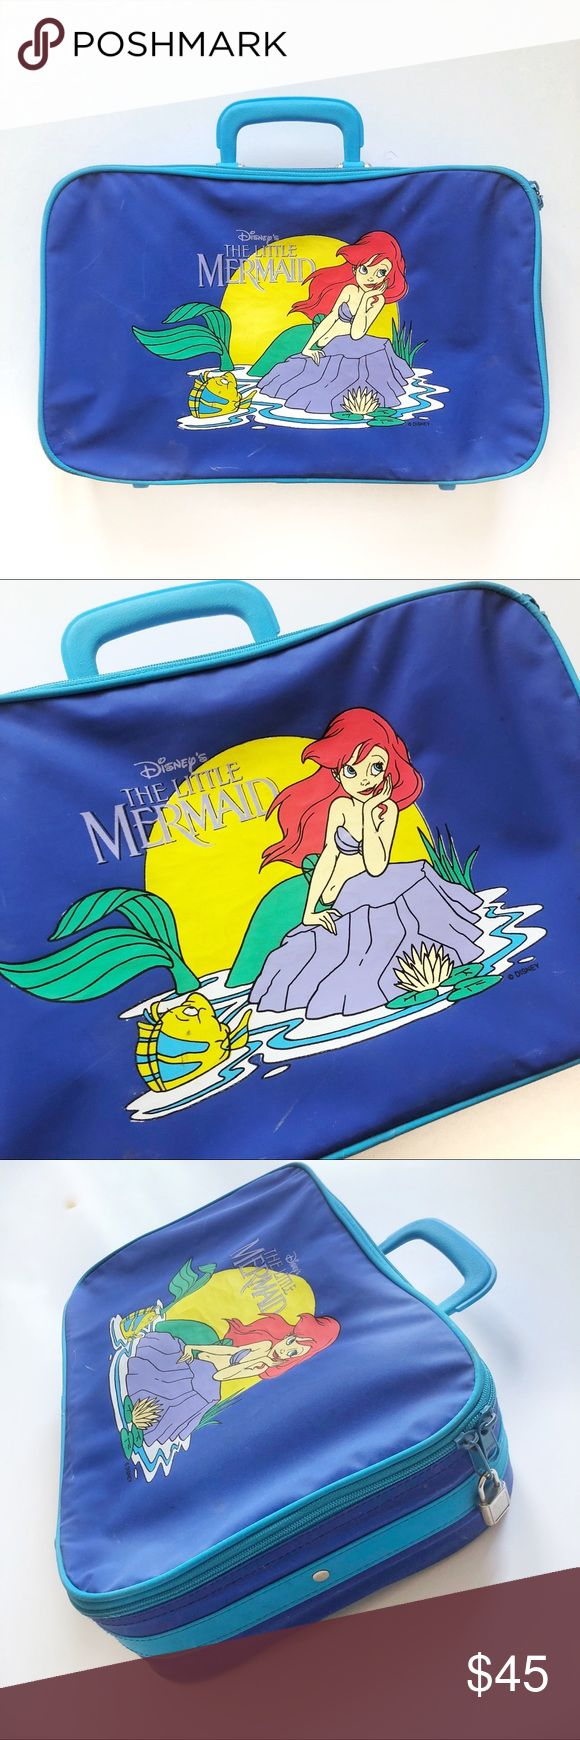 VTG🌈90s Little Mermaid Disney Mini Suitcase Tote So much yes! Adorable 90s vintage Little Mermaid mini suitcase/tote/briefcase by Disney. Features your favorite Ariel & Flounder, who want nothing more than to be Part of Your World 😜 Zips fully, strap inside for efficient packing. Lock on the zipper - I do not have a key for it. A few little nics & marks, but structurally perfect! Under the Sea fun begins here! Offers welcome! 🧜♀️🦀🐠🌊   Tags: Sebastian 90's Prince Eric Frozen Lion King…